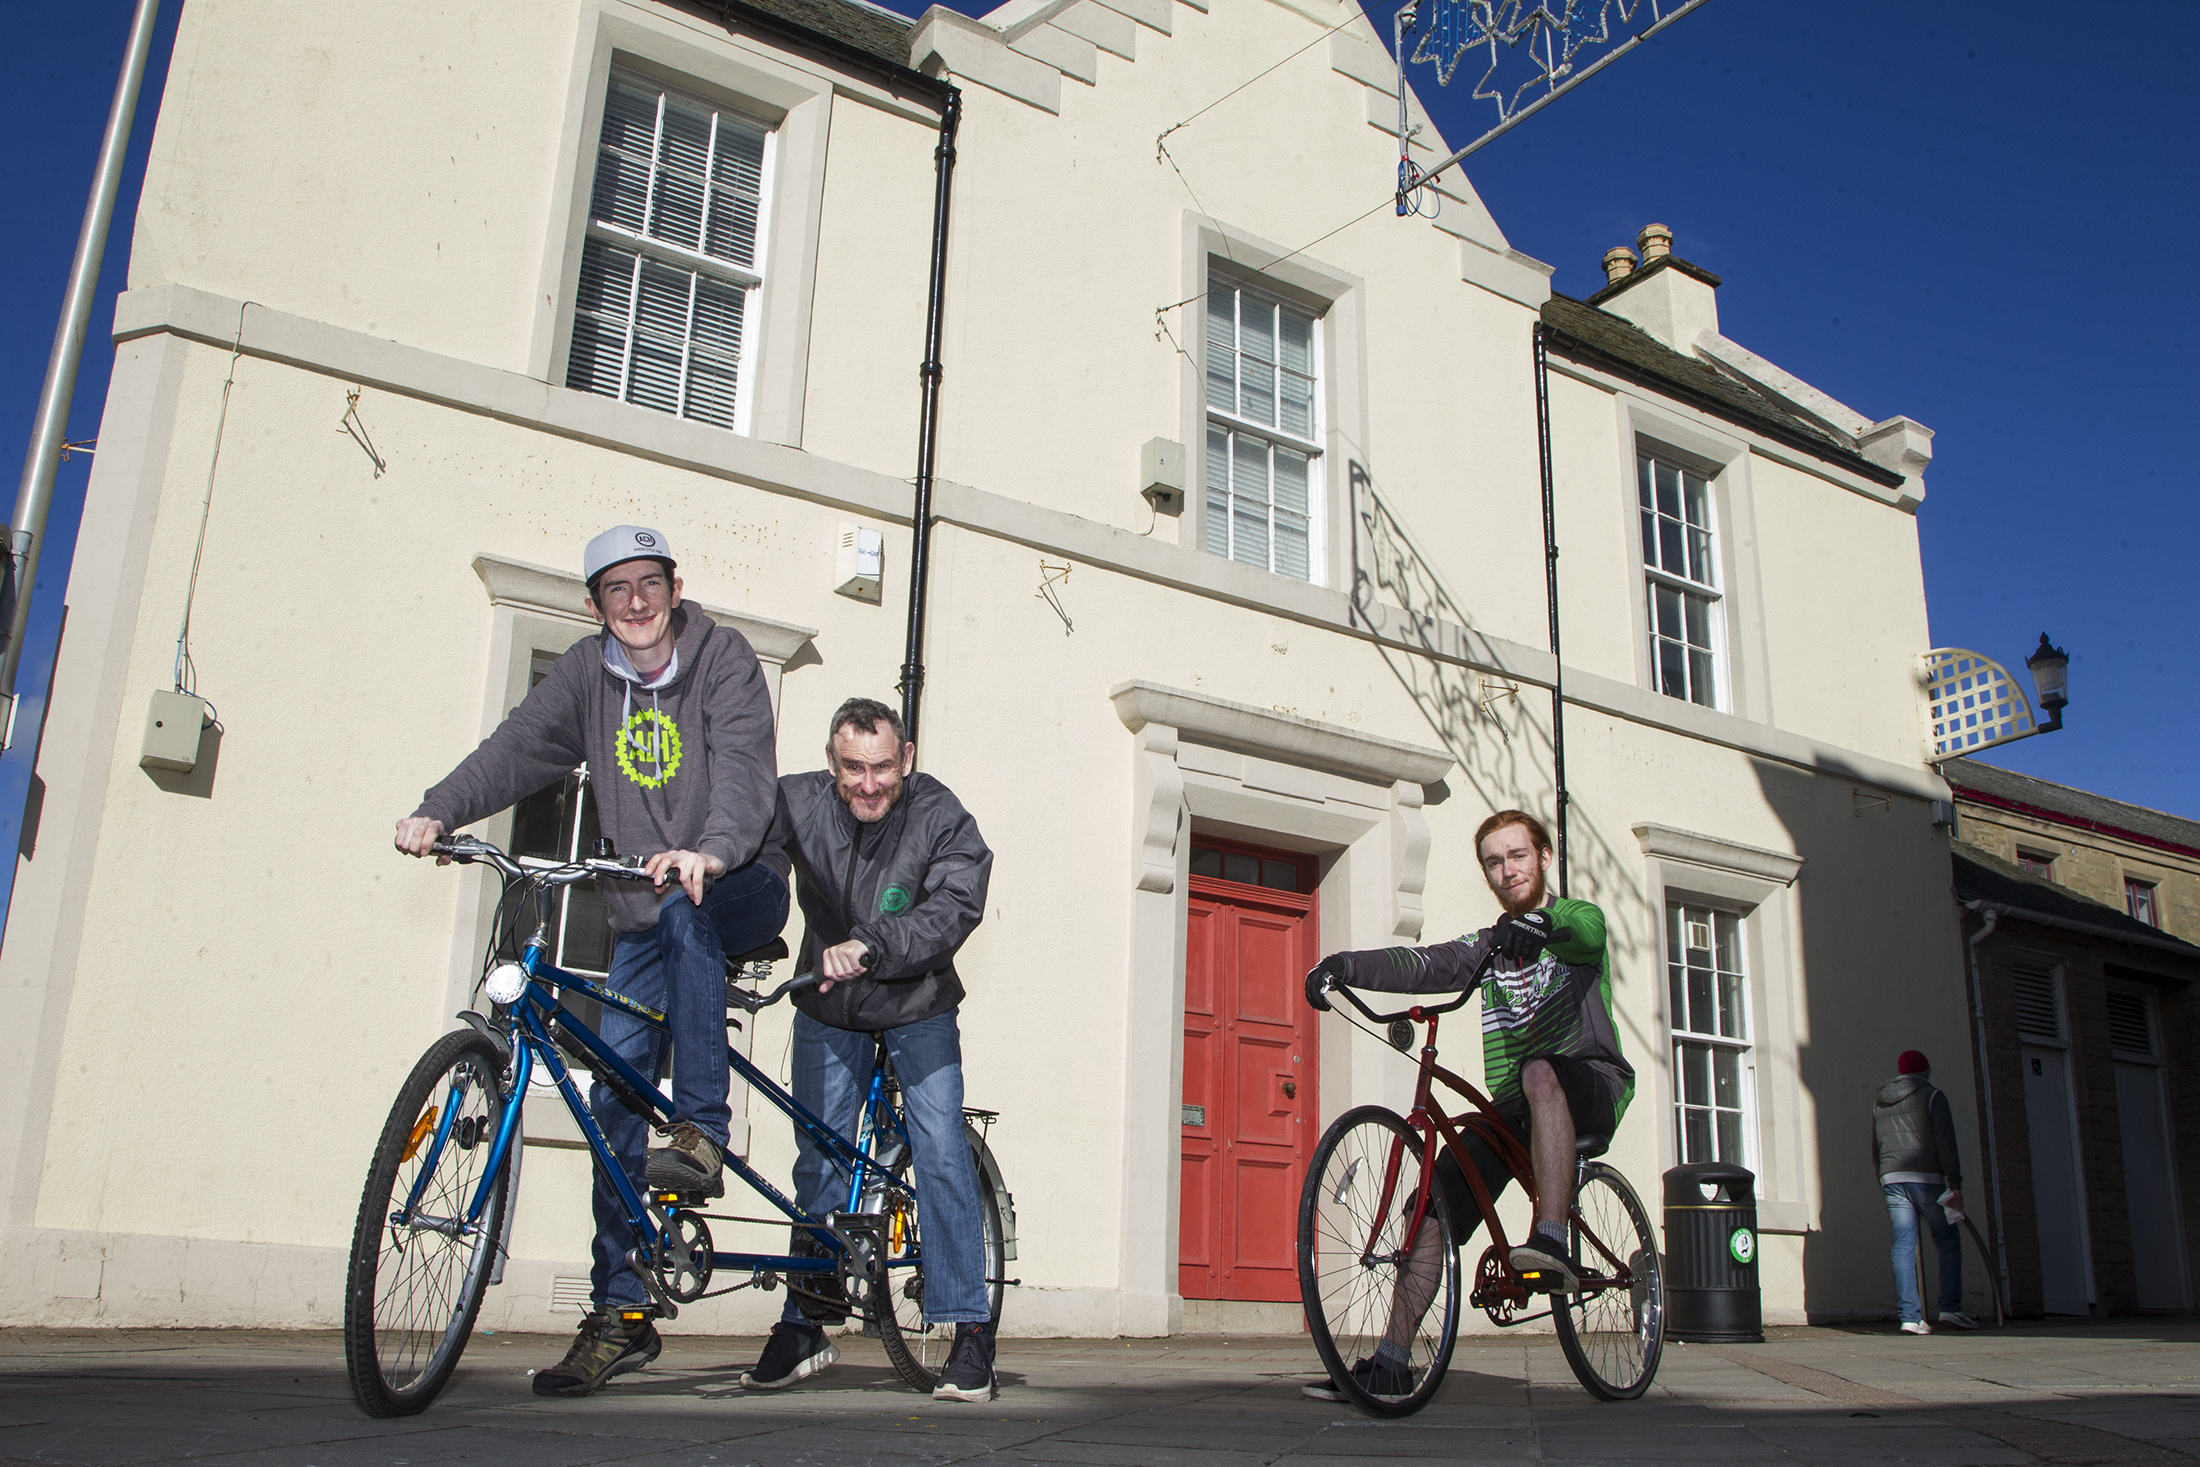 Project Director Scott Francis(left) on a tandem with volunteer Jeff Williams and community mechanic Calum Watson (right) outside the new premises